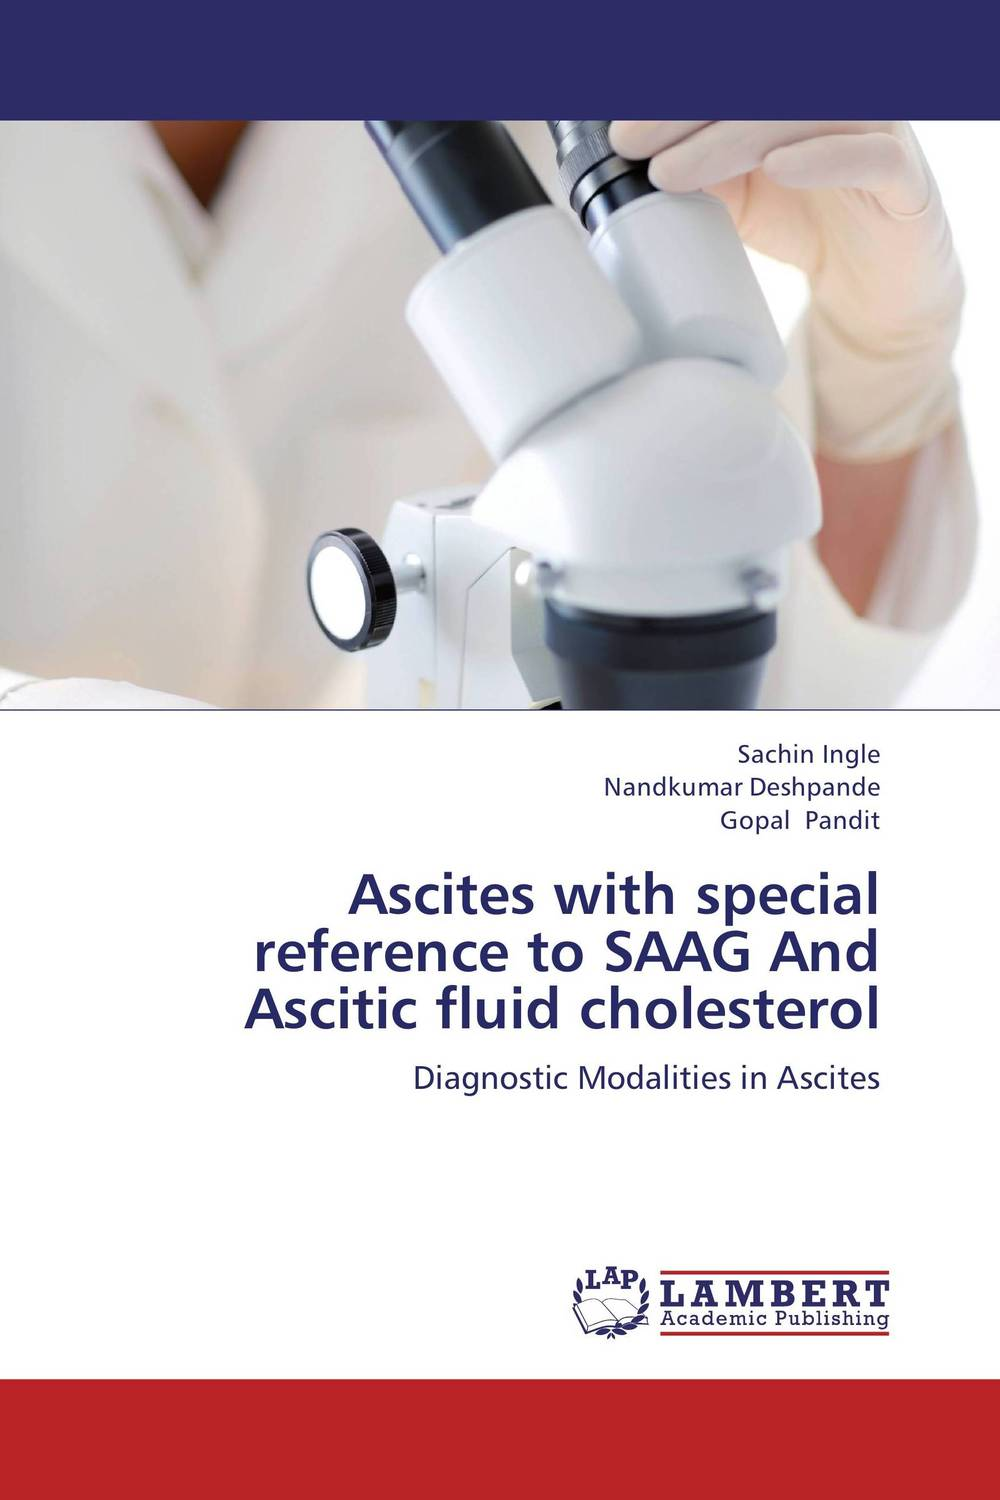 Ascites with special reference to SAAG And Ascitic fluid cholesterol psychiatric disorders in postpartum period